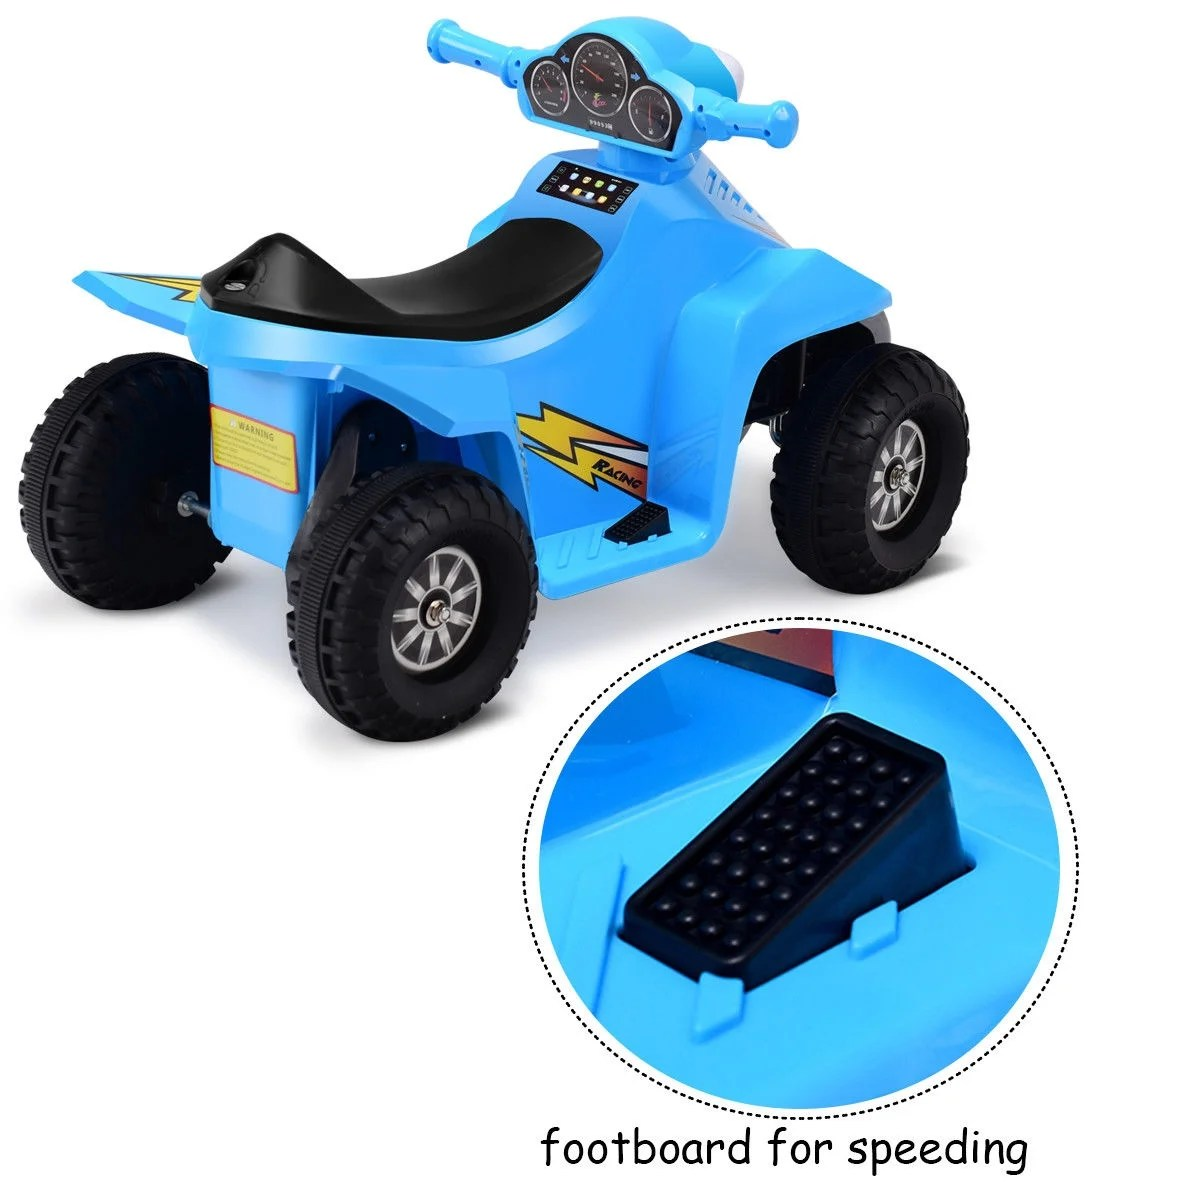 Toddler Car Dashboard Gymax Kids Electric Car Battery Power Toddler Vehicle W Dashboard Radio Light Blue